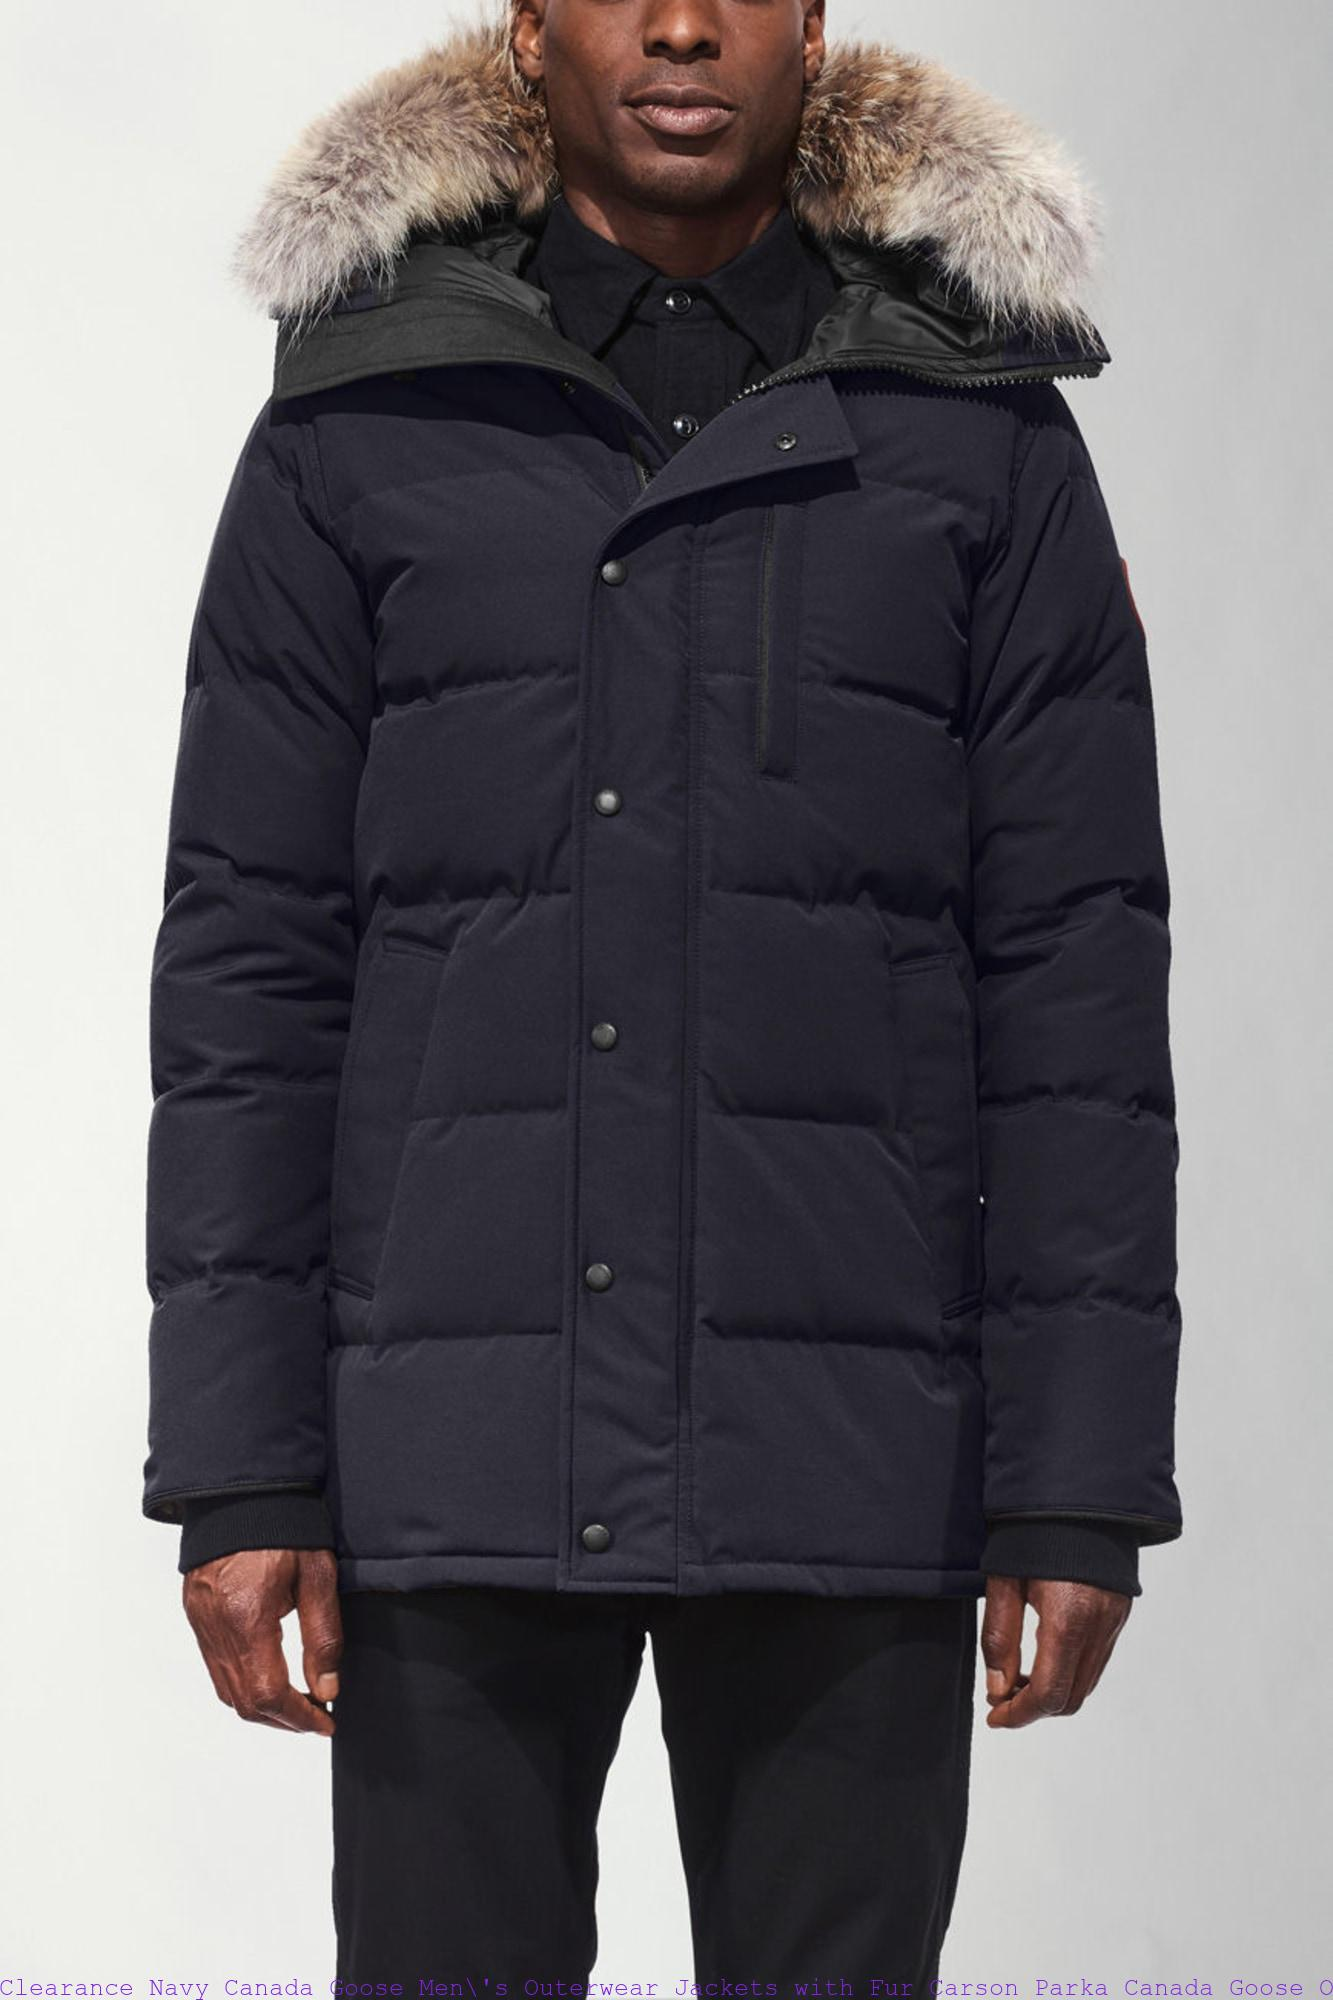 Clearance Navy Canada Goose Men  s Outerwear Jackets with Fur Carson ... edeb13902